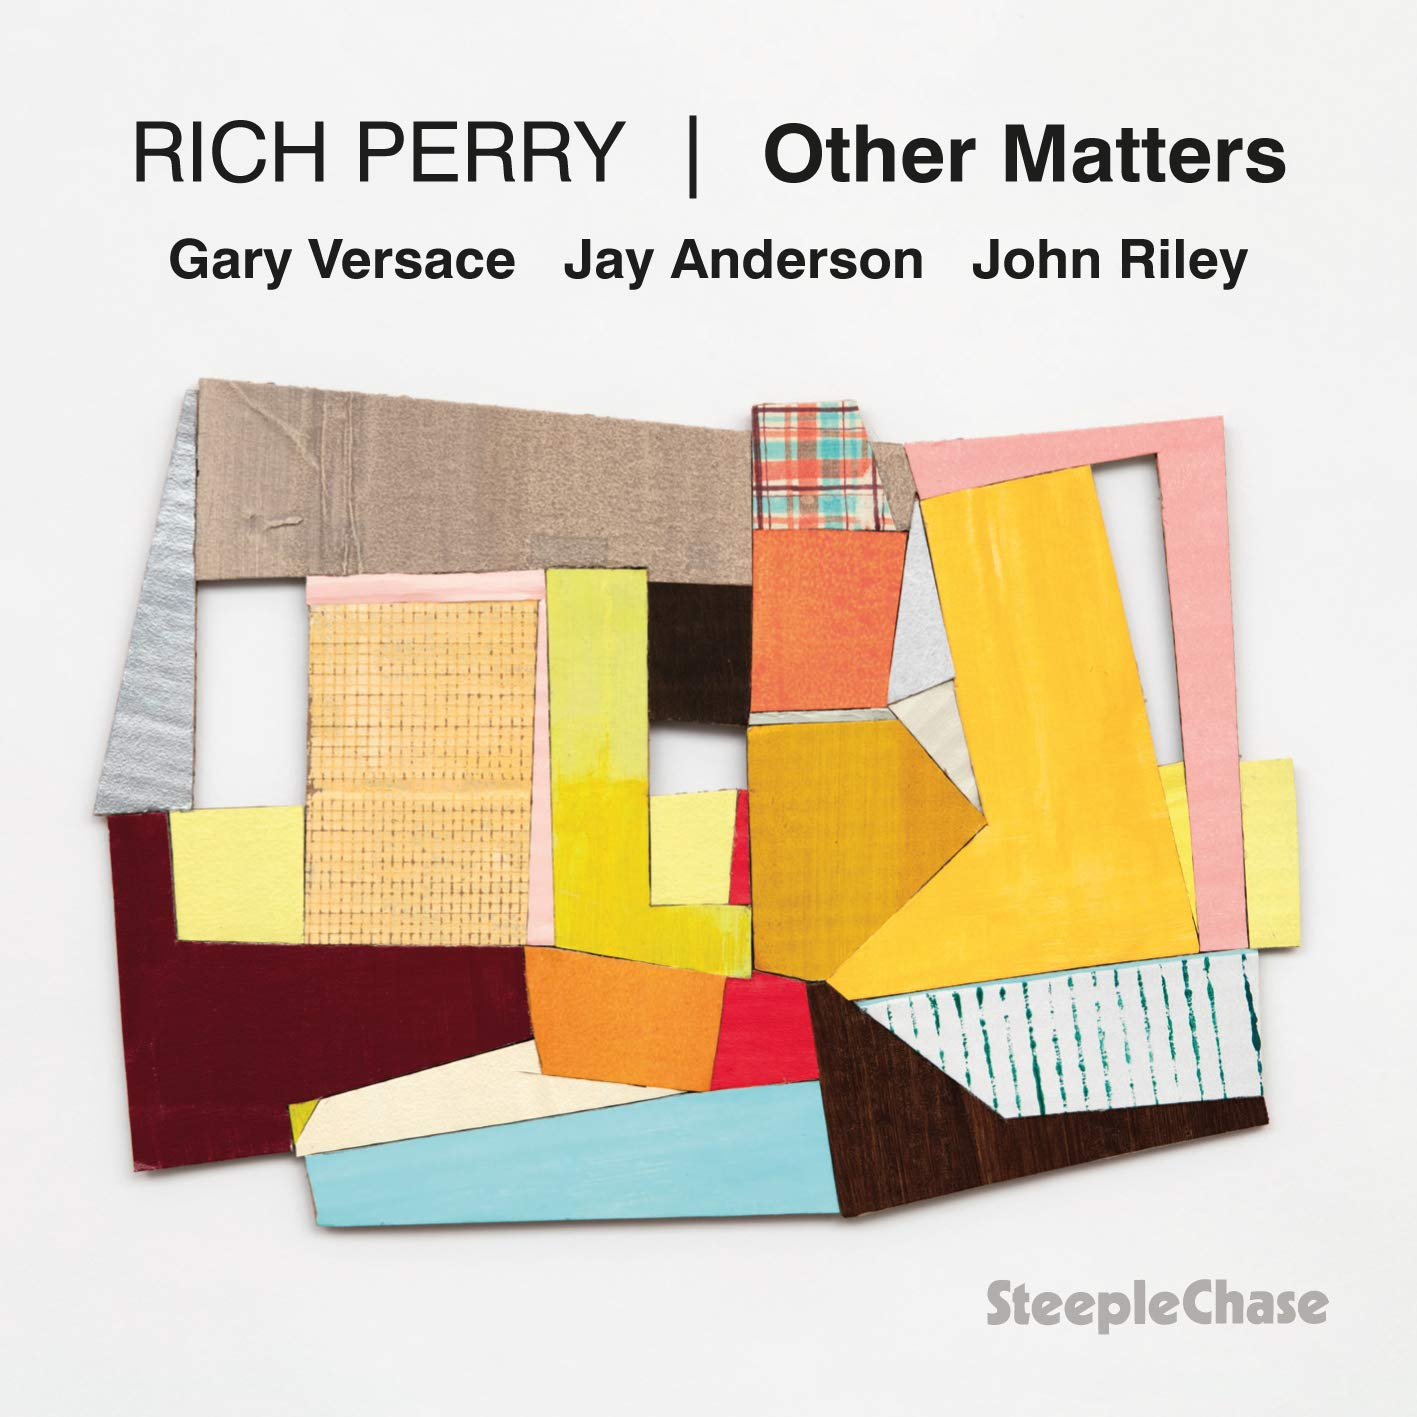 RICH PERRY - Other Matters cover